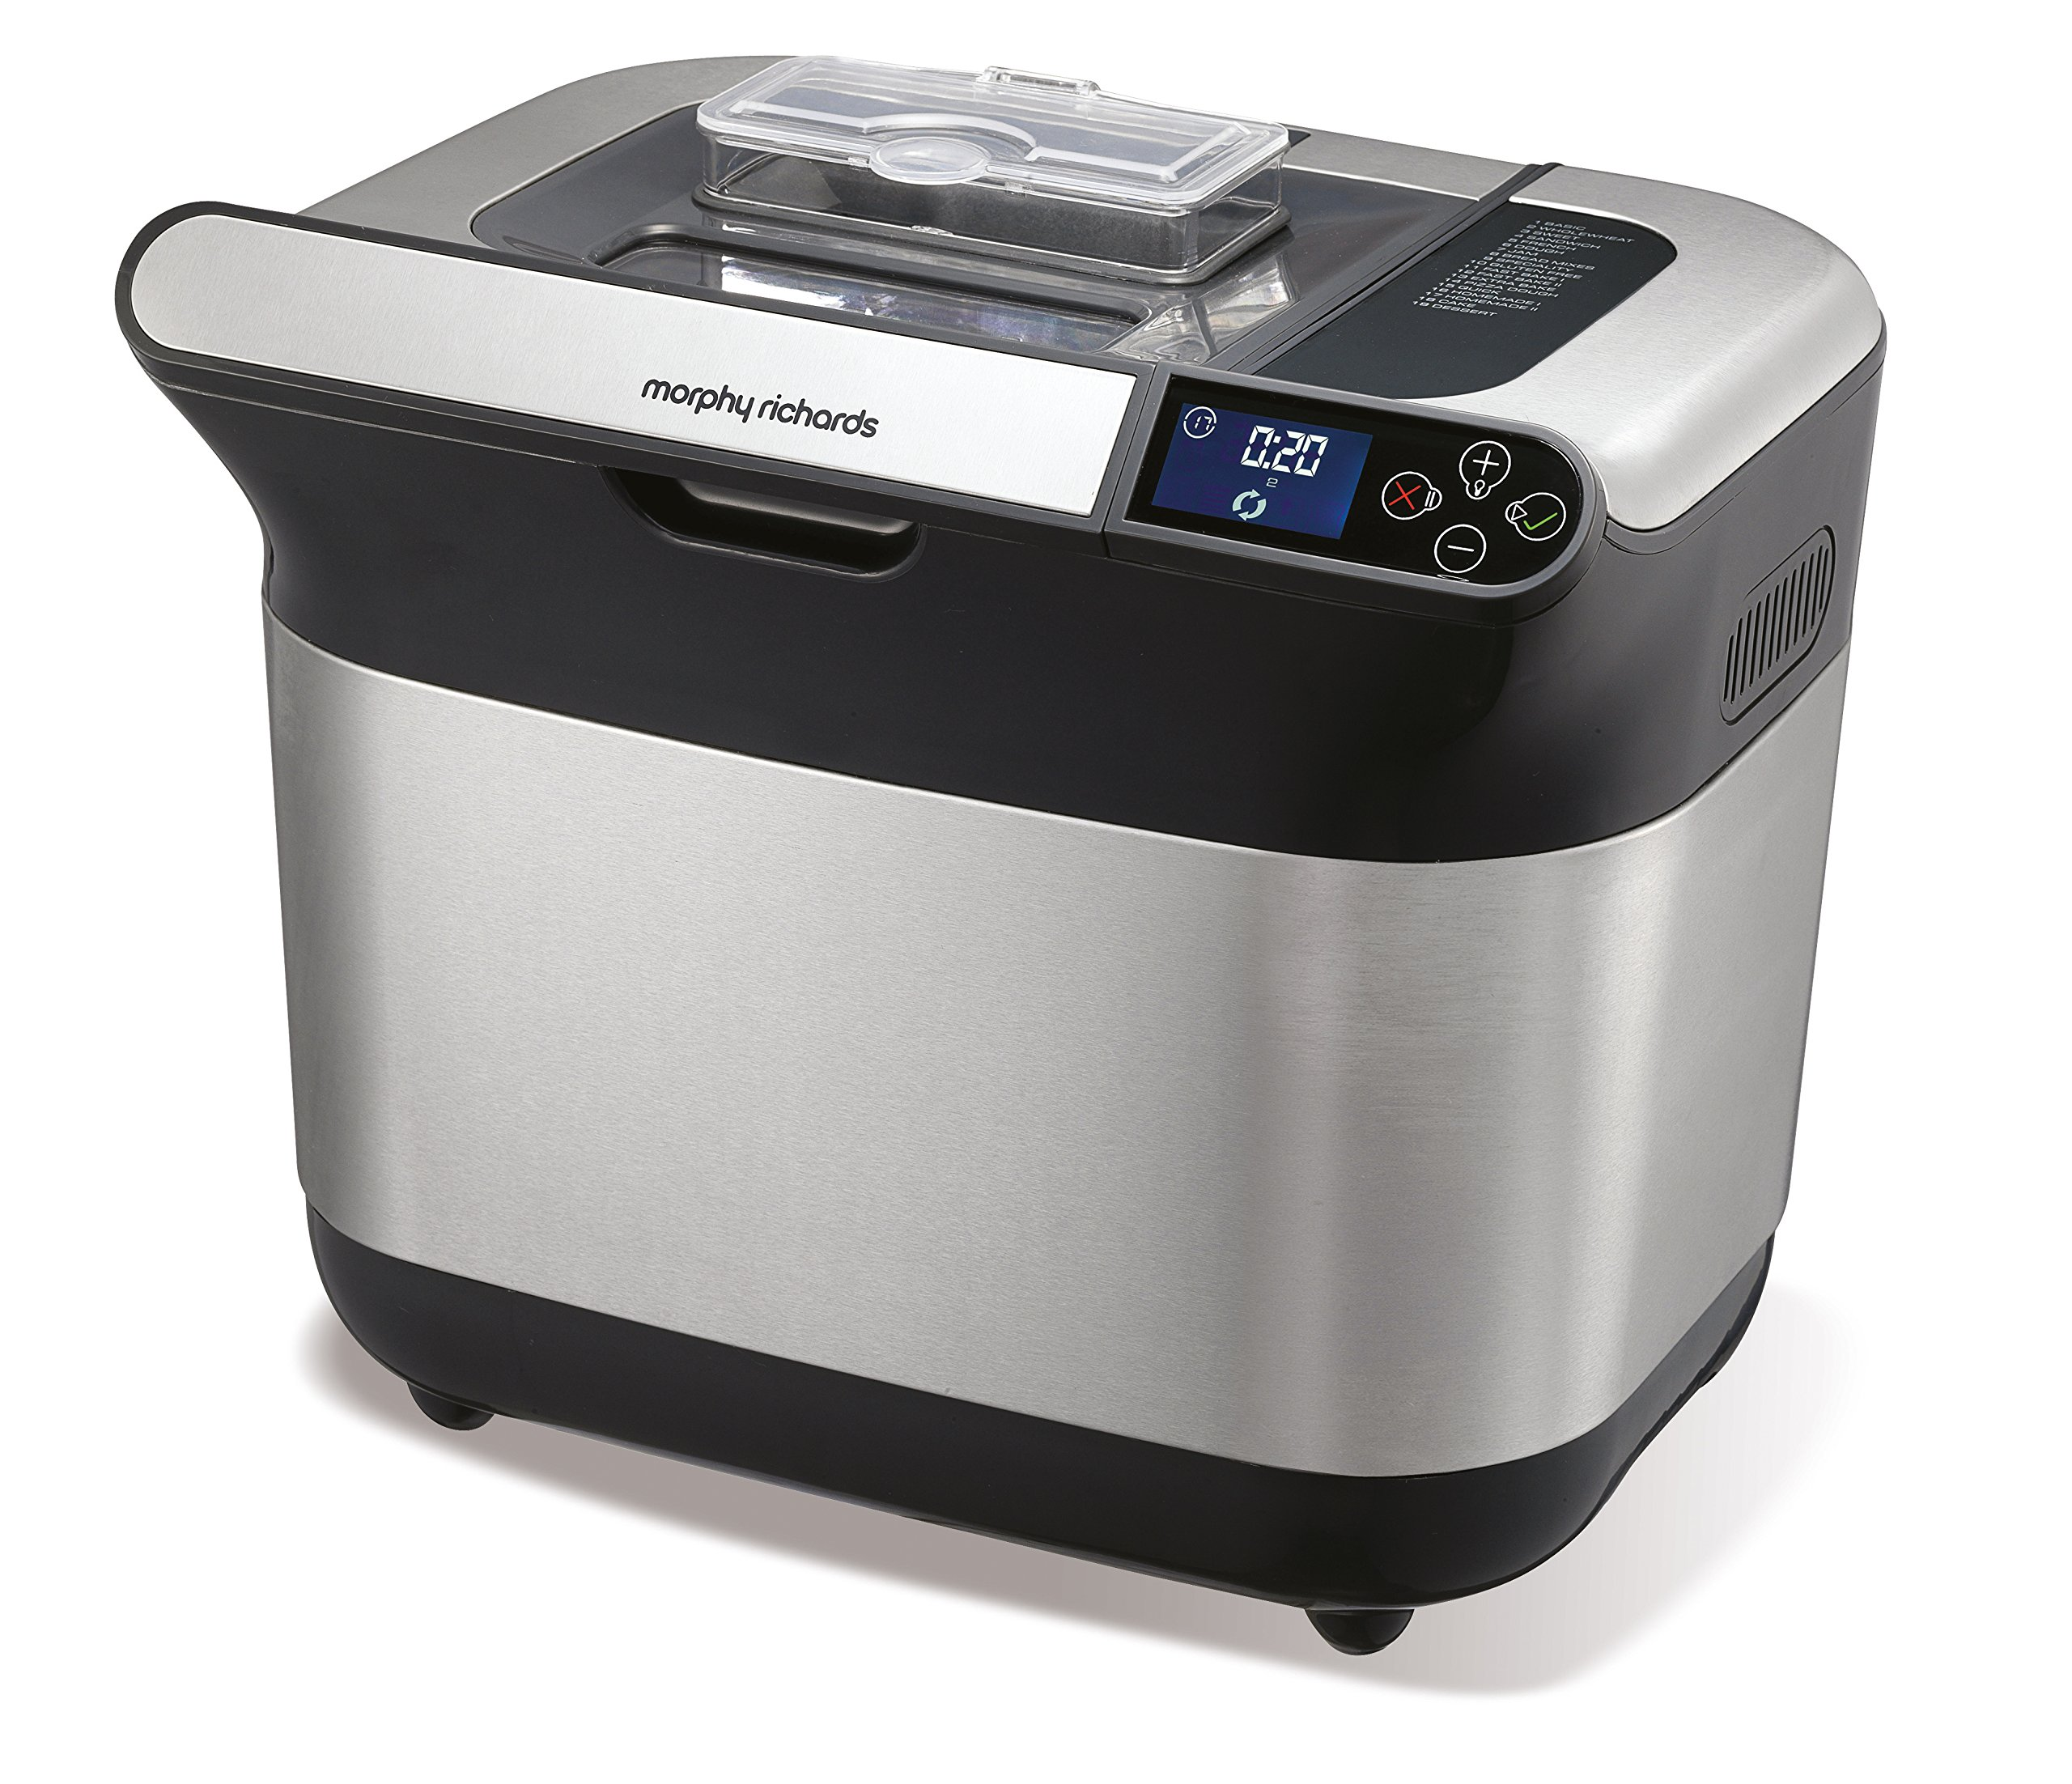 Morphy Richards - 48319 - Machine à pain, 600 watts, Argent product image